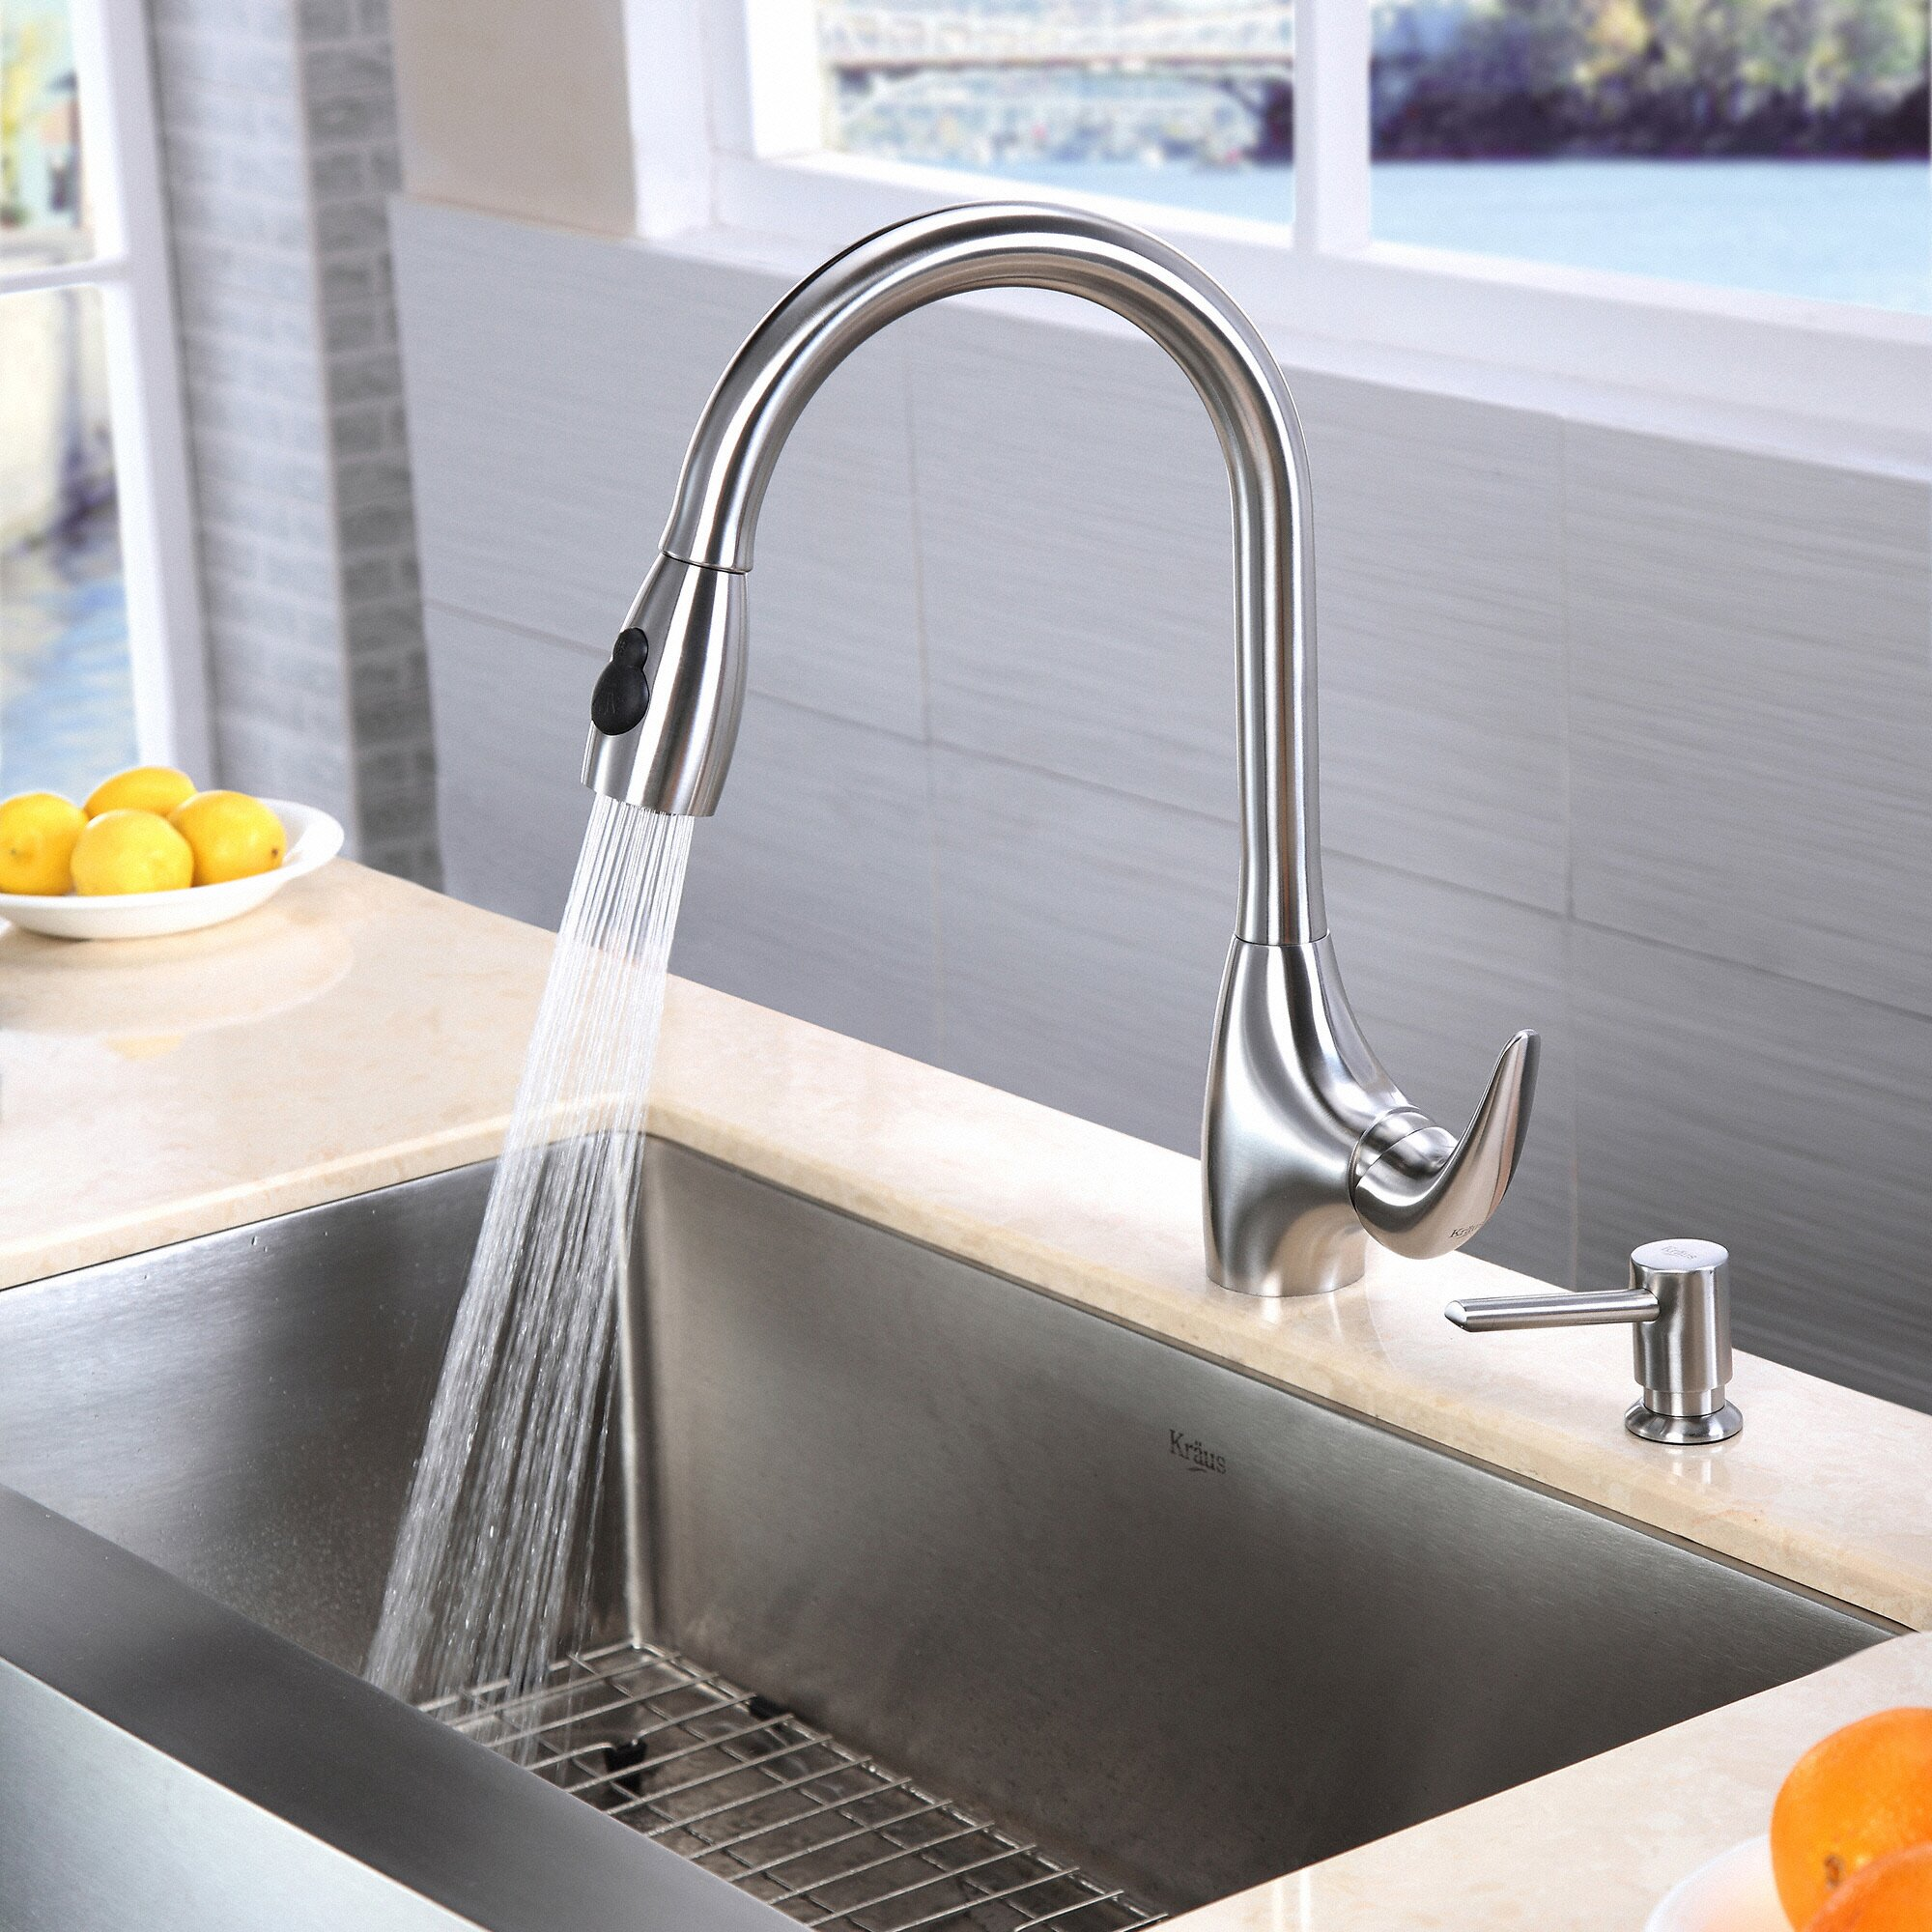 20 Farmhouse Sink : Kraus 33